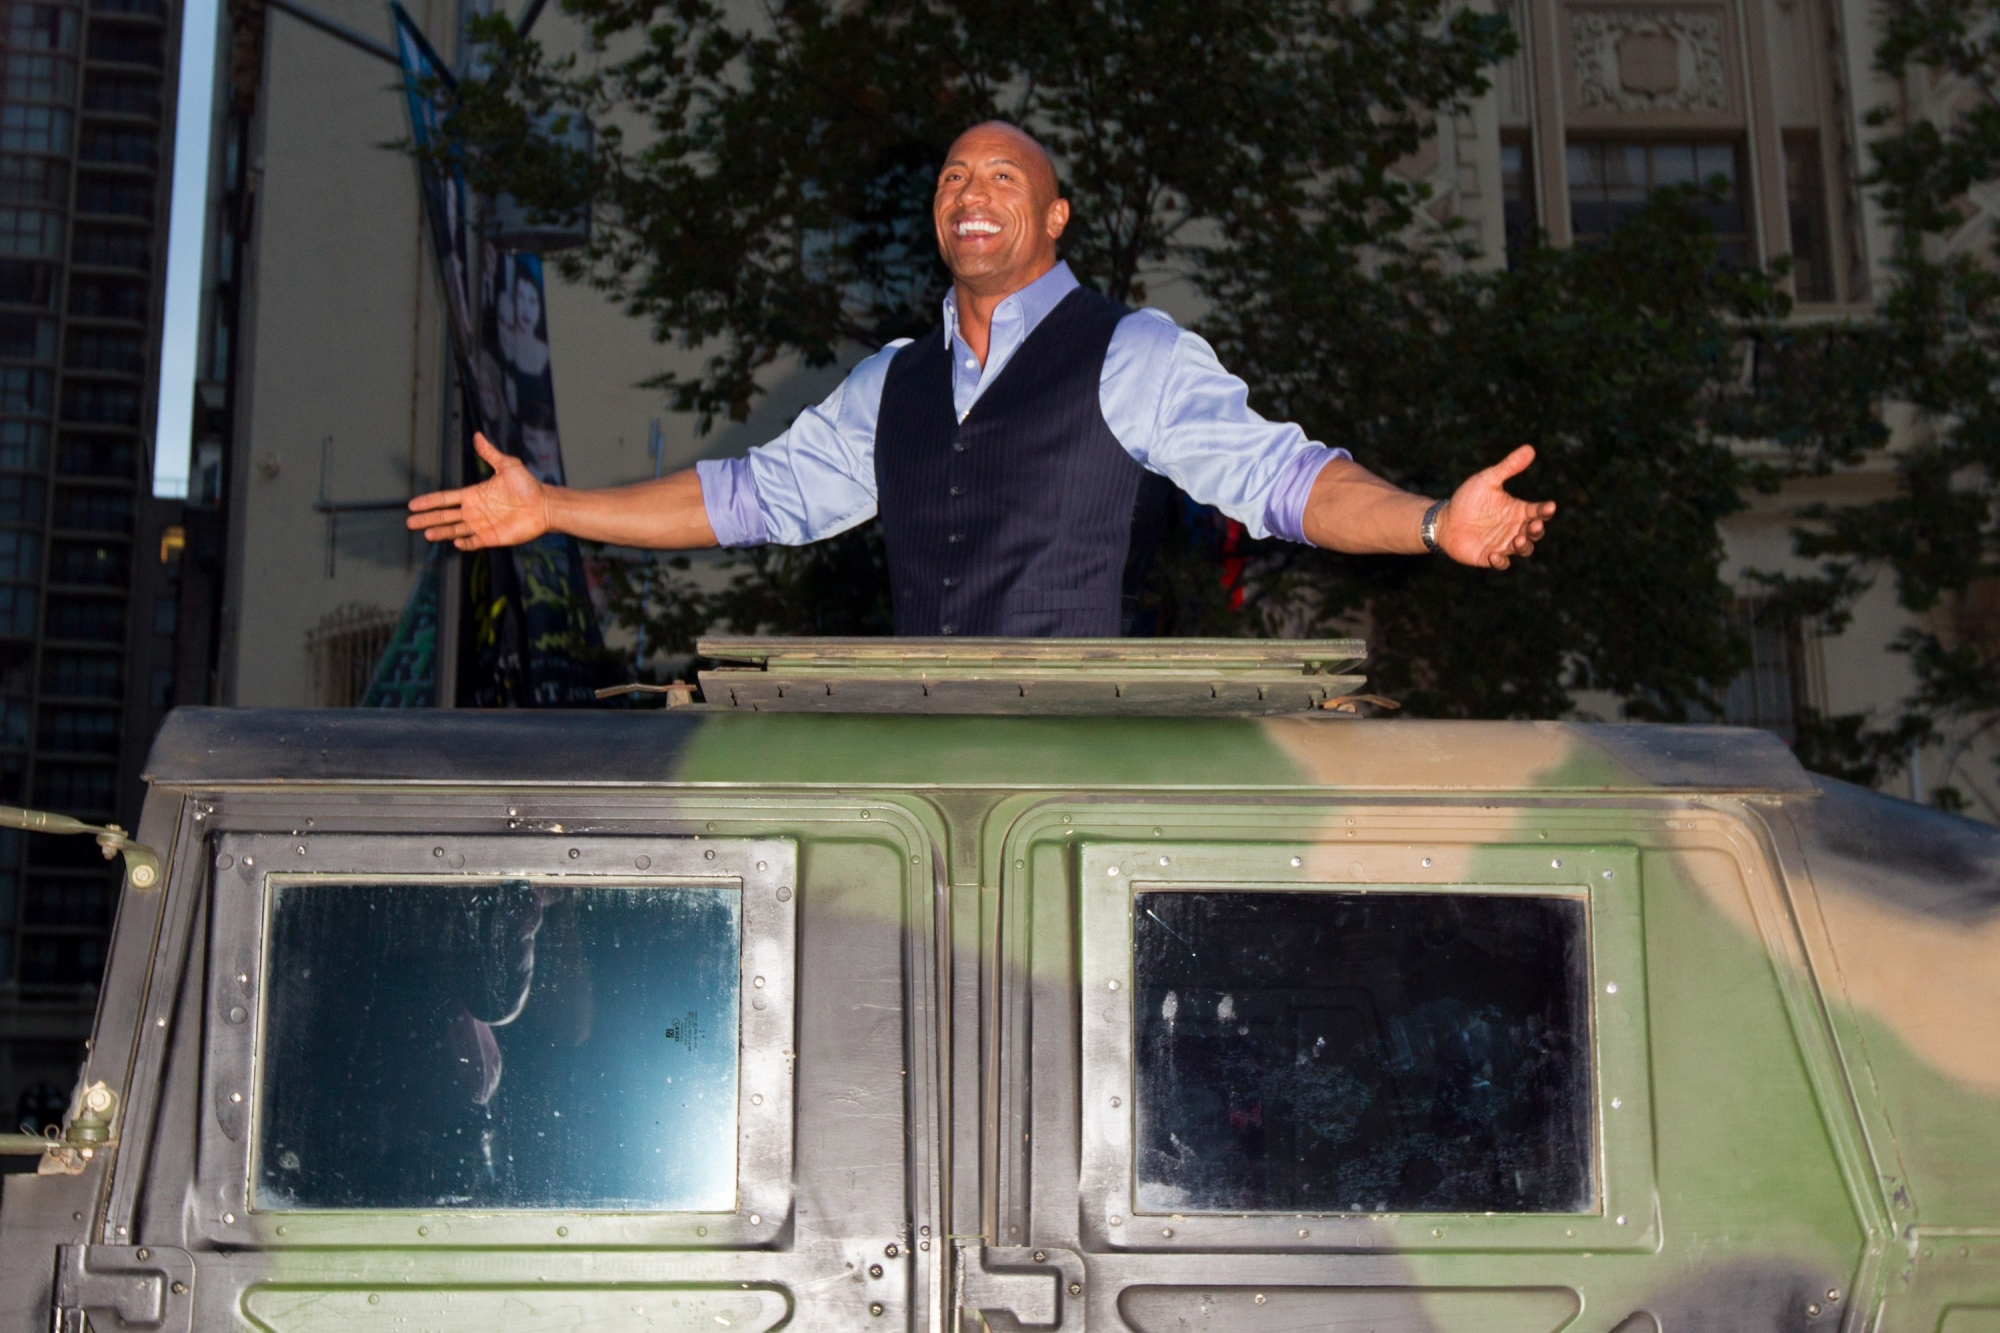 Dwayne Johnson Is Powerful In G.I. JOE RETALIATION, A Must See Film!